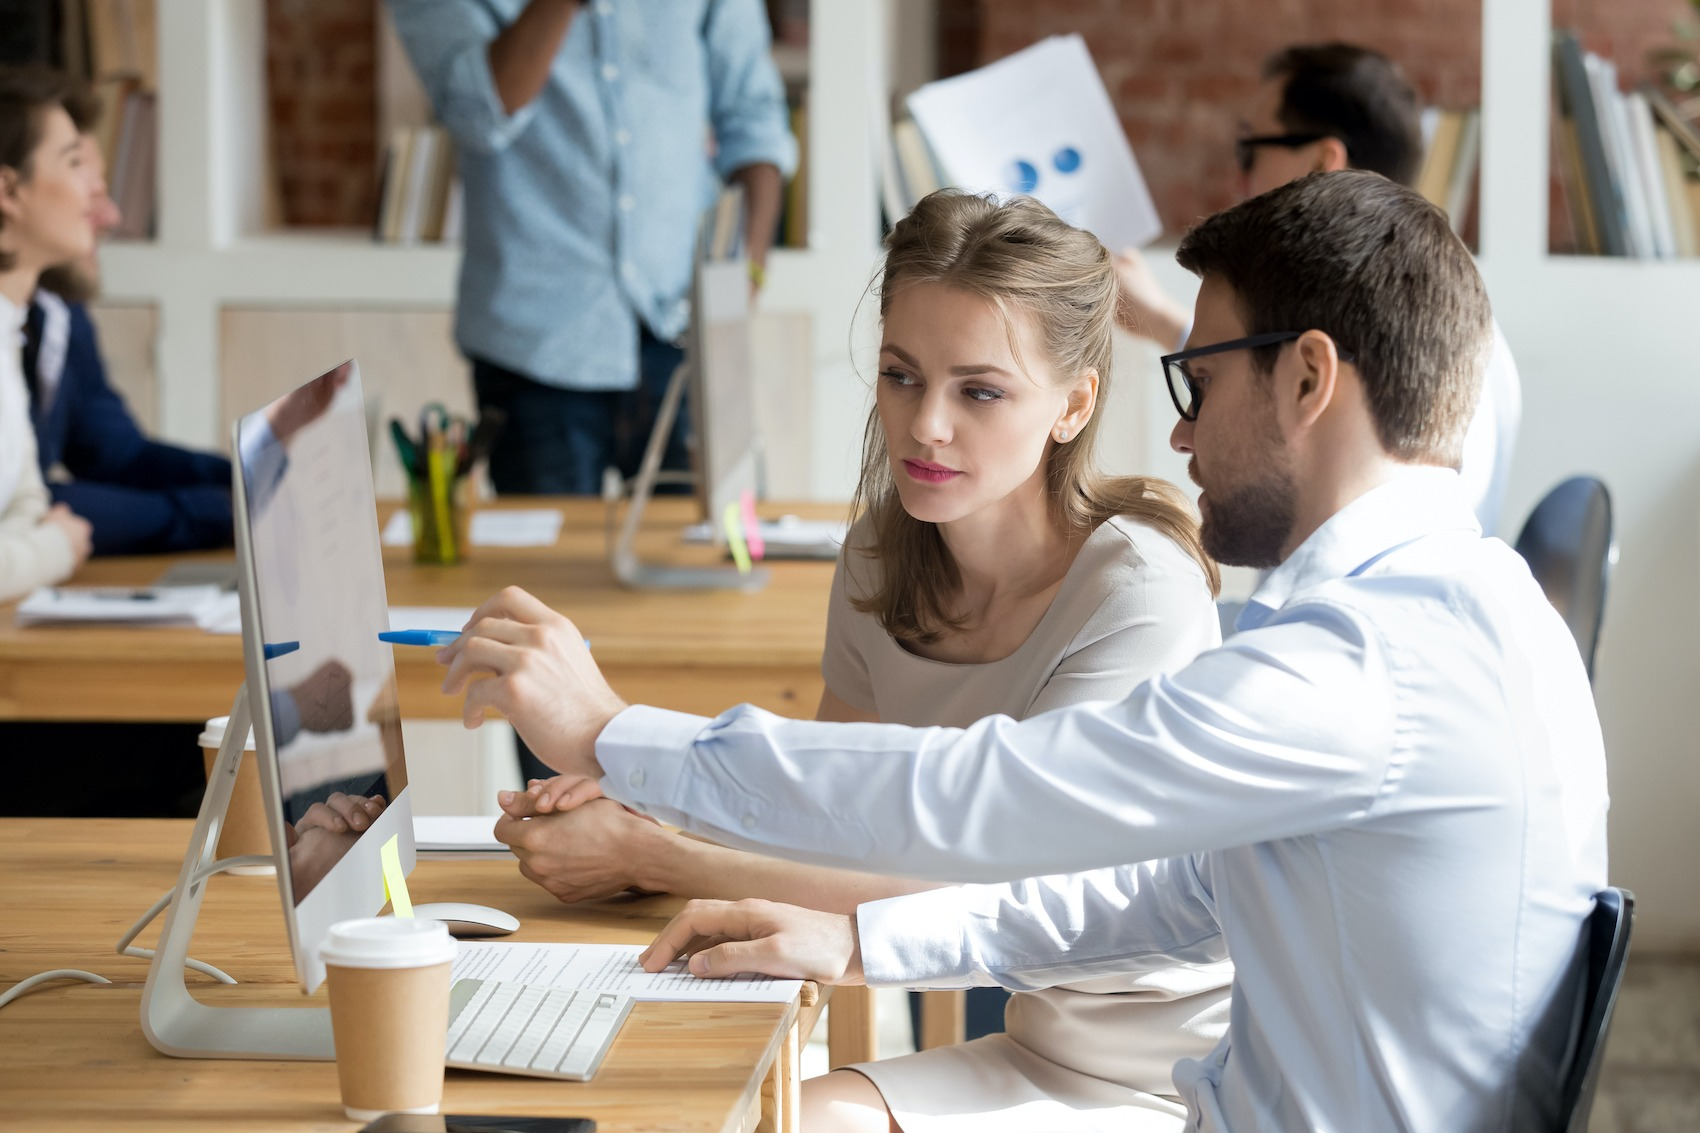 A manager explaining something on a computer screen during a sales coaching session with their team member